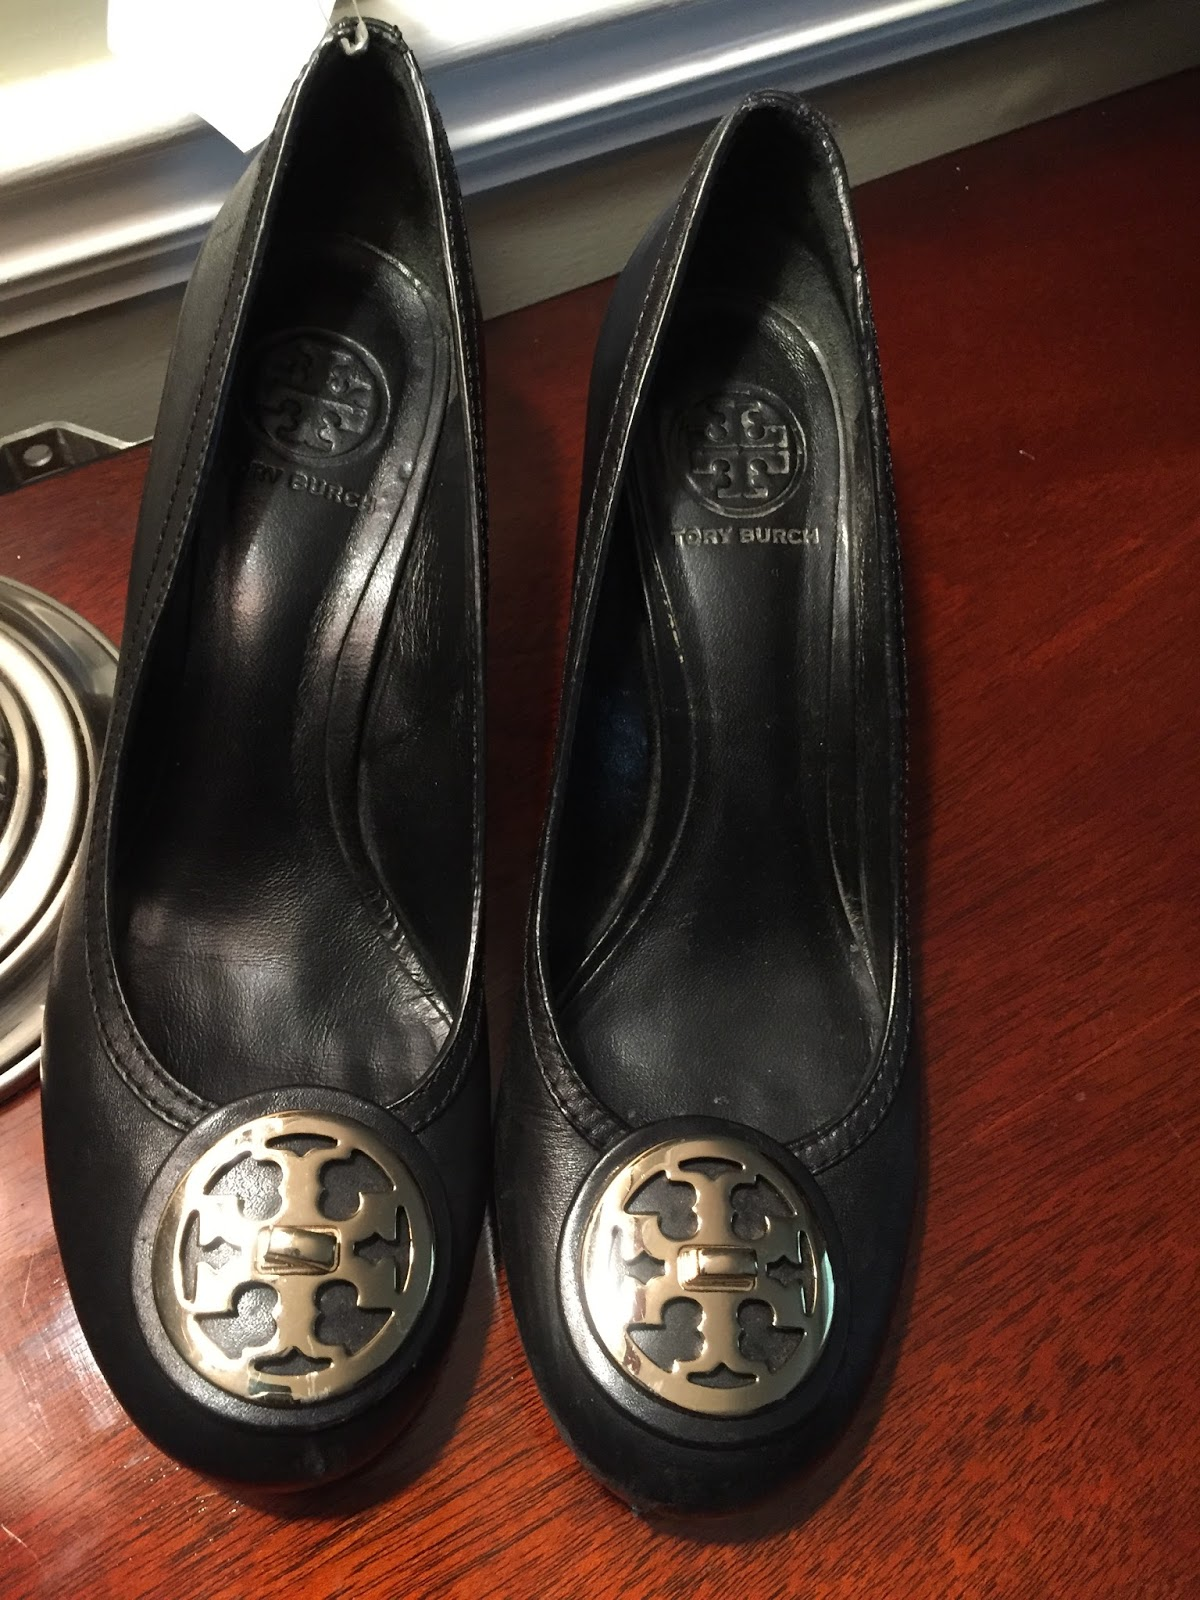 aea0e56104d2 Well it s not every day you get a great pair of TORY BURCH shoes gifted to  you. That s exactly what happened to me when my friend and fellow thrifter  Aresia ...